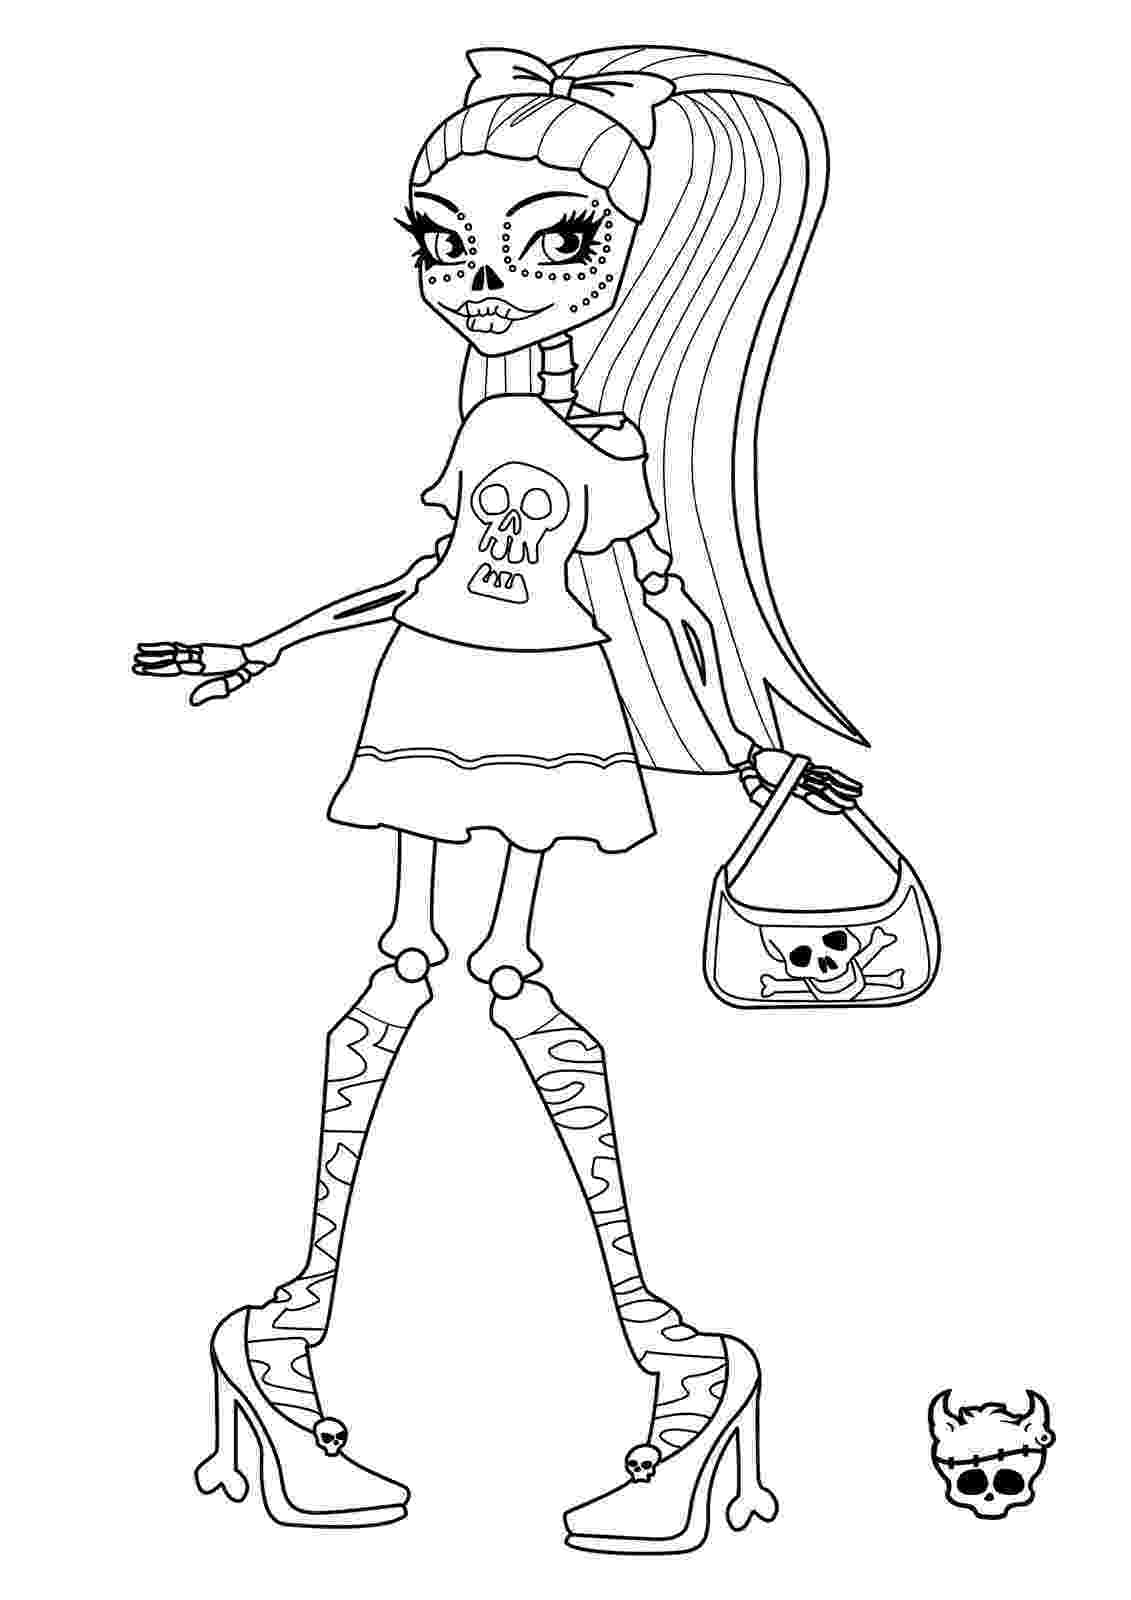 monster high color sheets coloring pages monster high coloring pages free and printable high monster sheets color 1 1